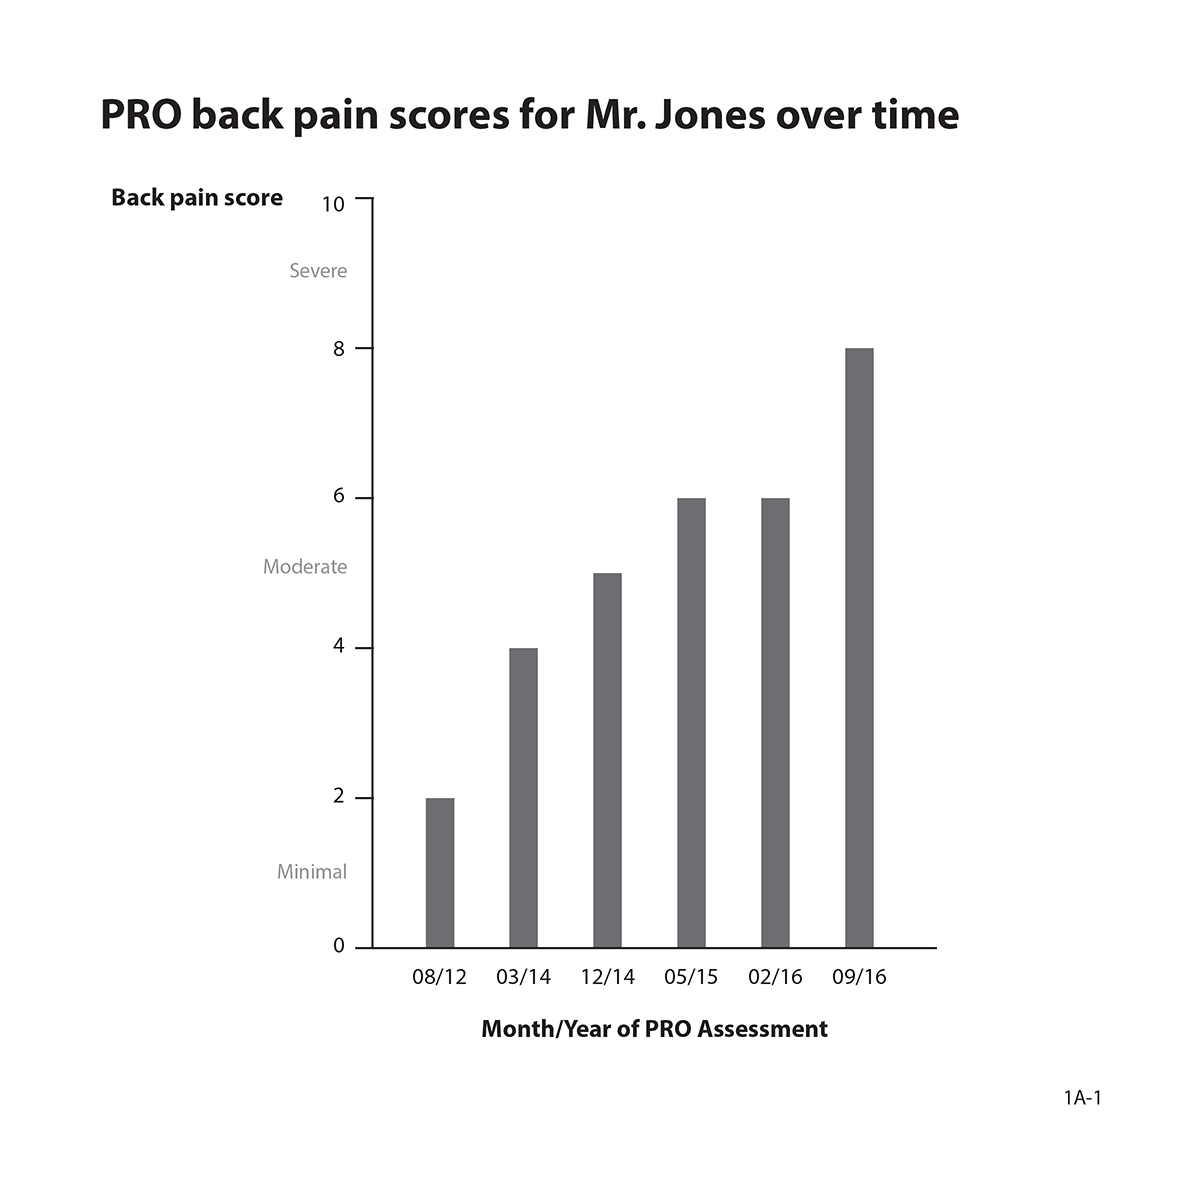 Longitudinal bar graph showing Mr. Jones PRO back pain scores over time.